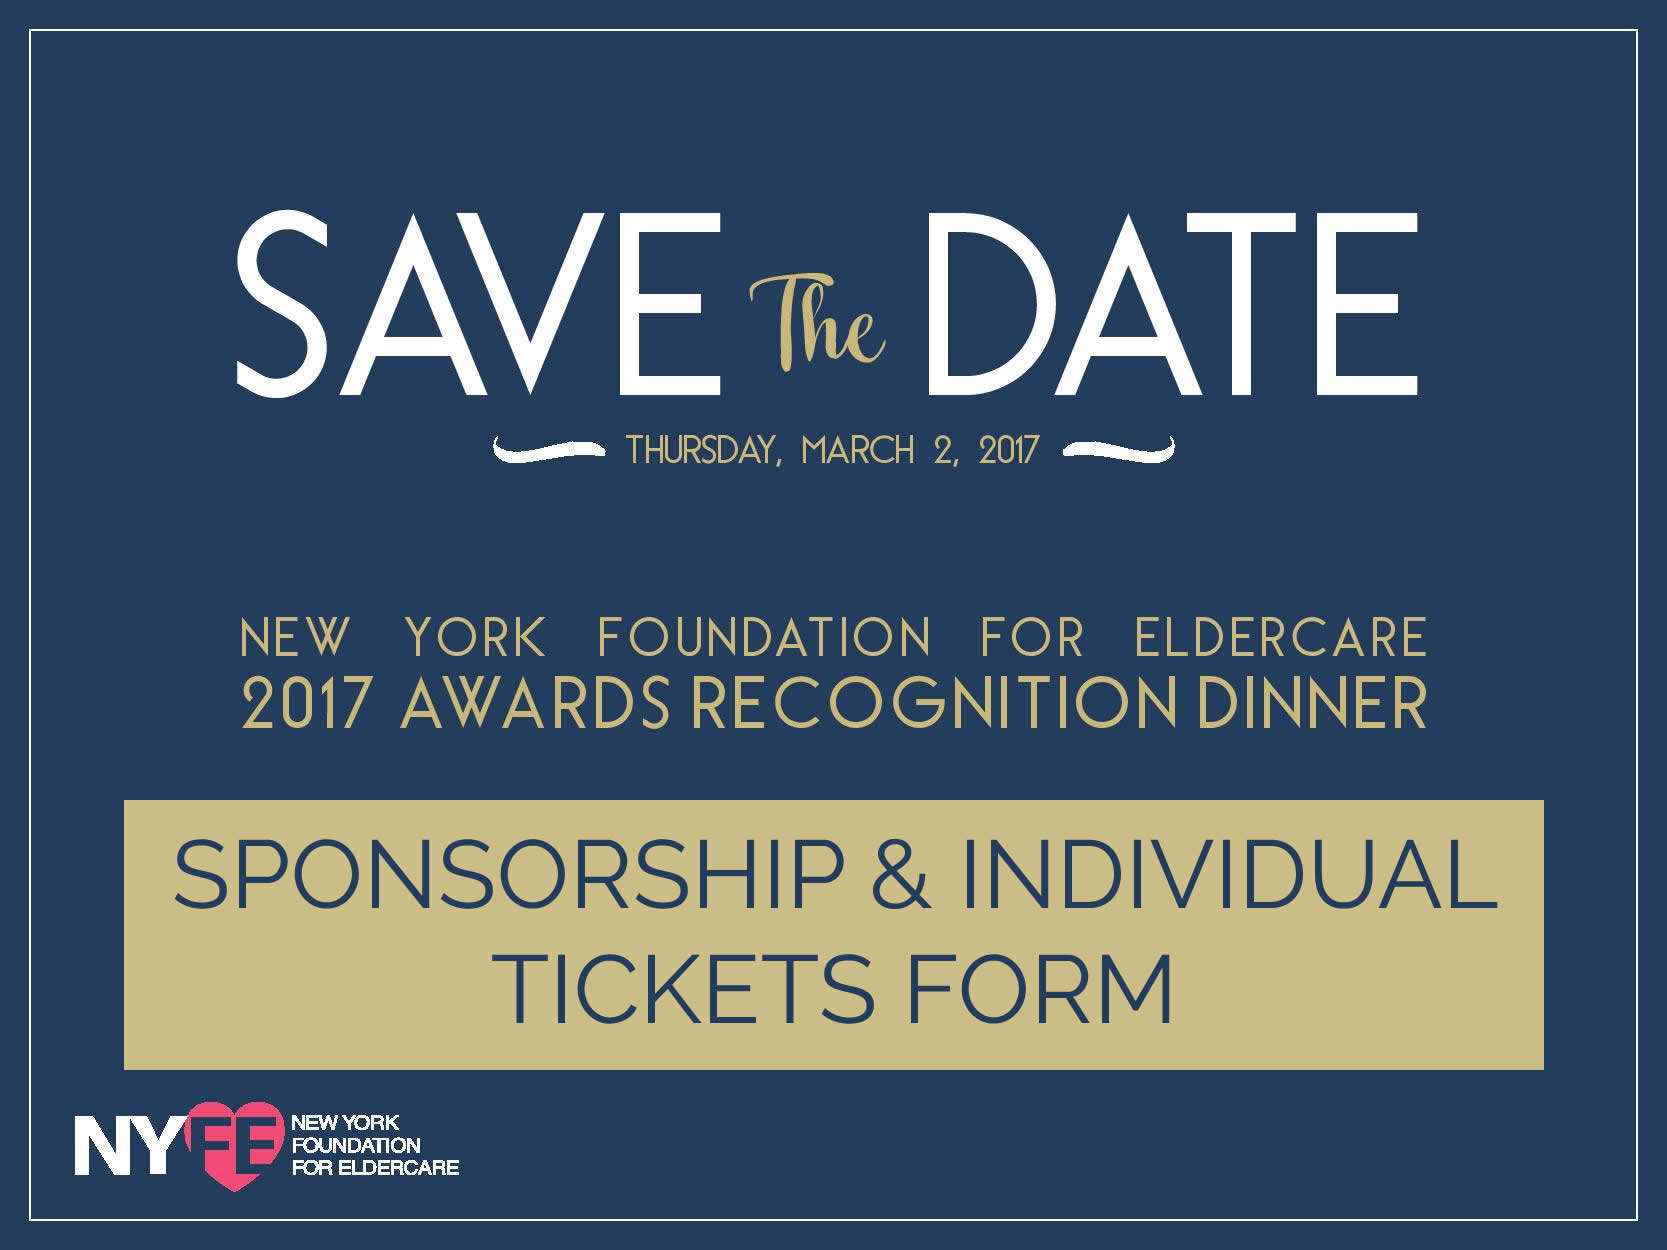 NYFE 2017 Awards Recognition Dinner Sponsorship and Tickets Form